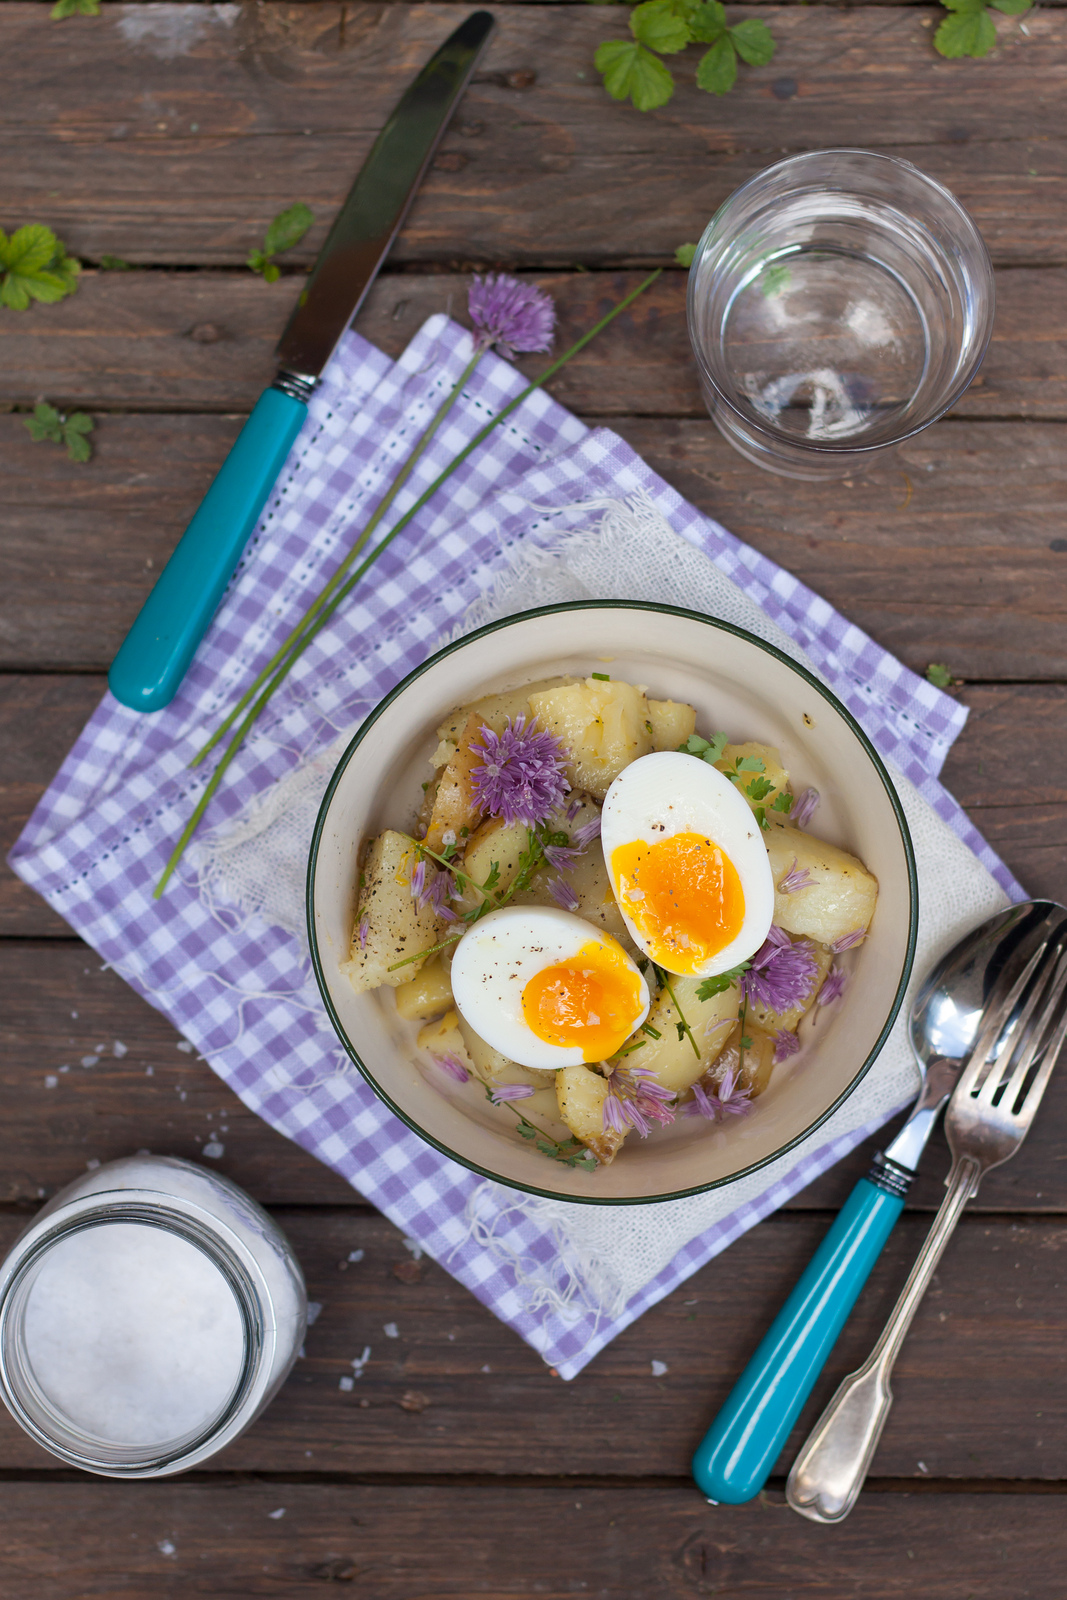 potato salad with chive flowers and soft boiled egg